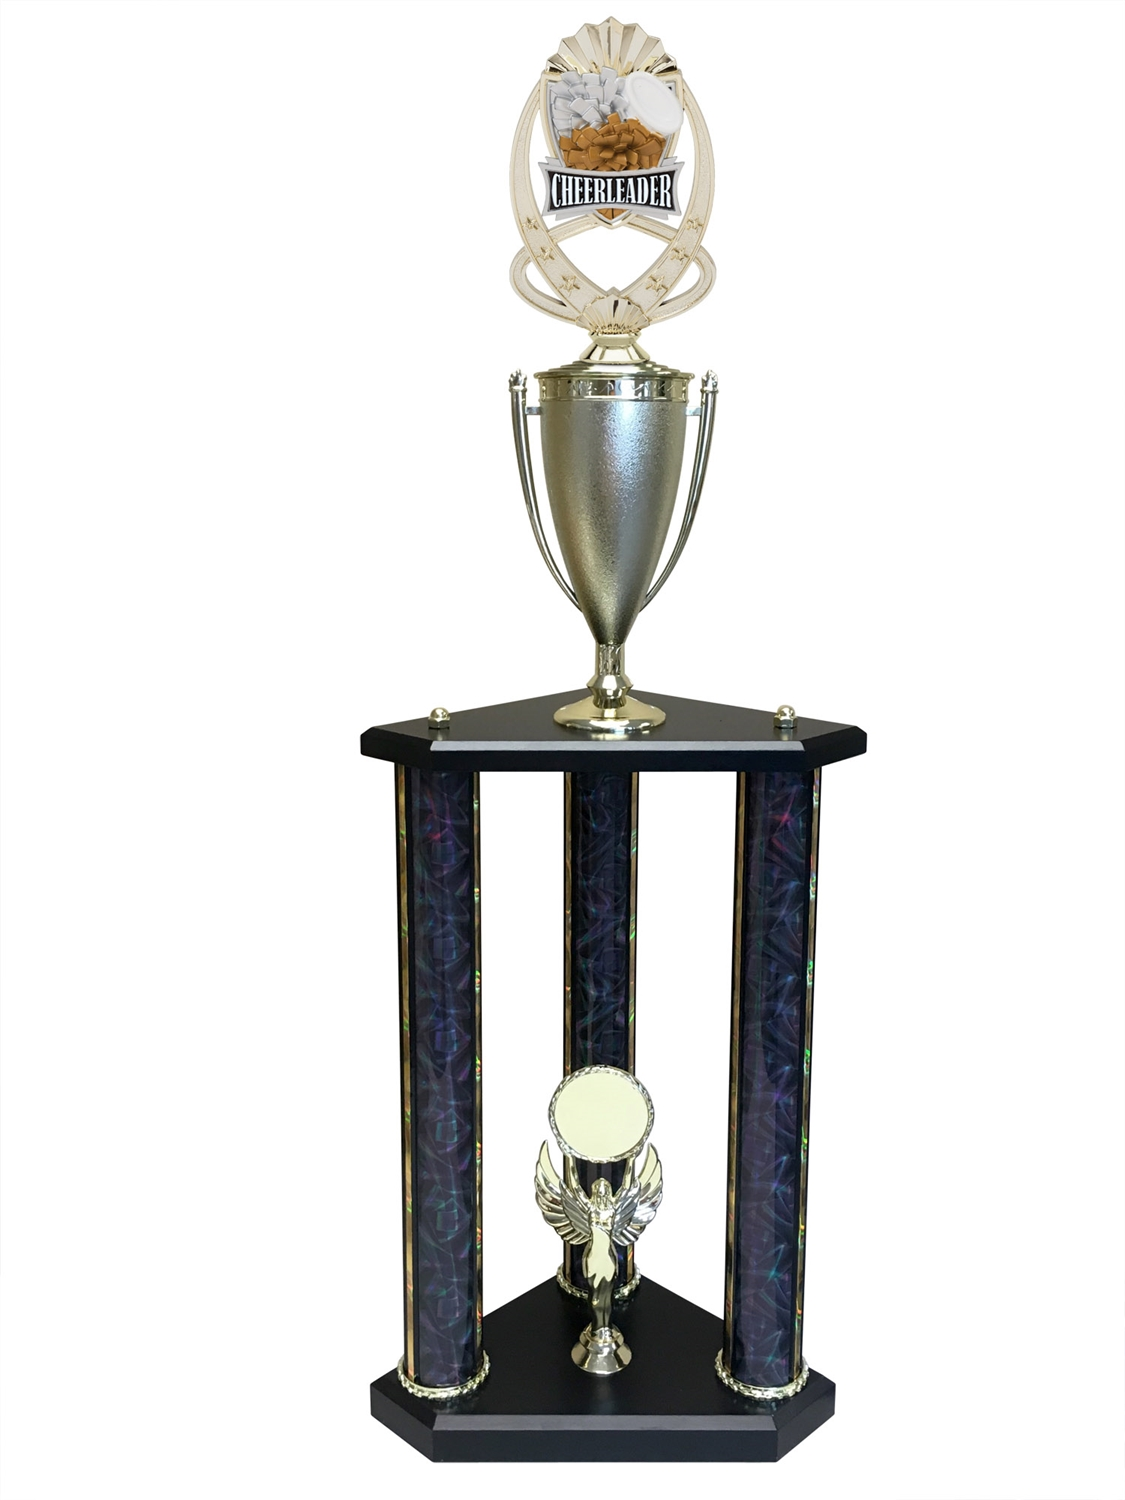 3 Post Cheerleading Trophy in 11 colors & 3 sizes